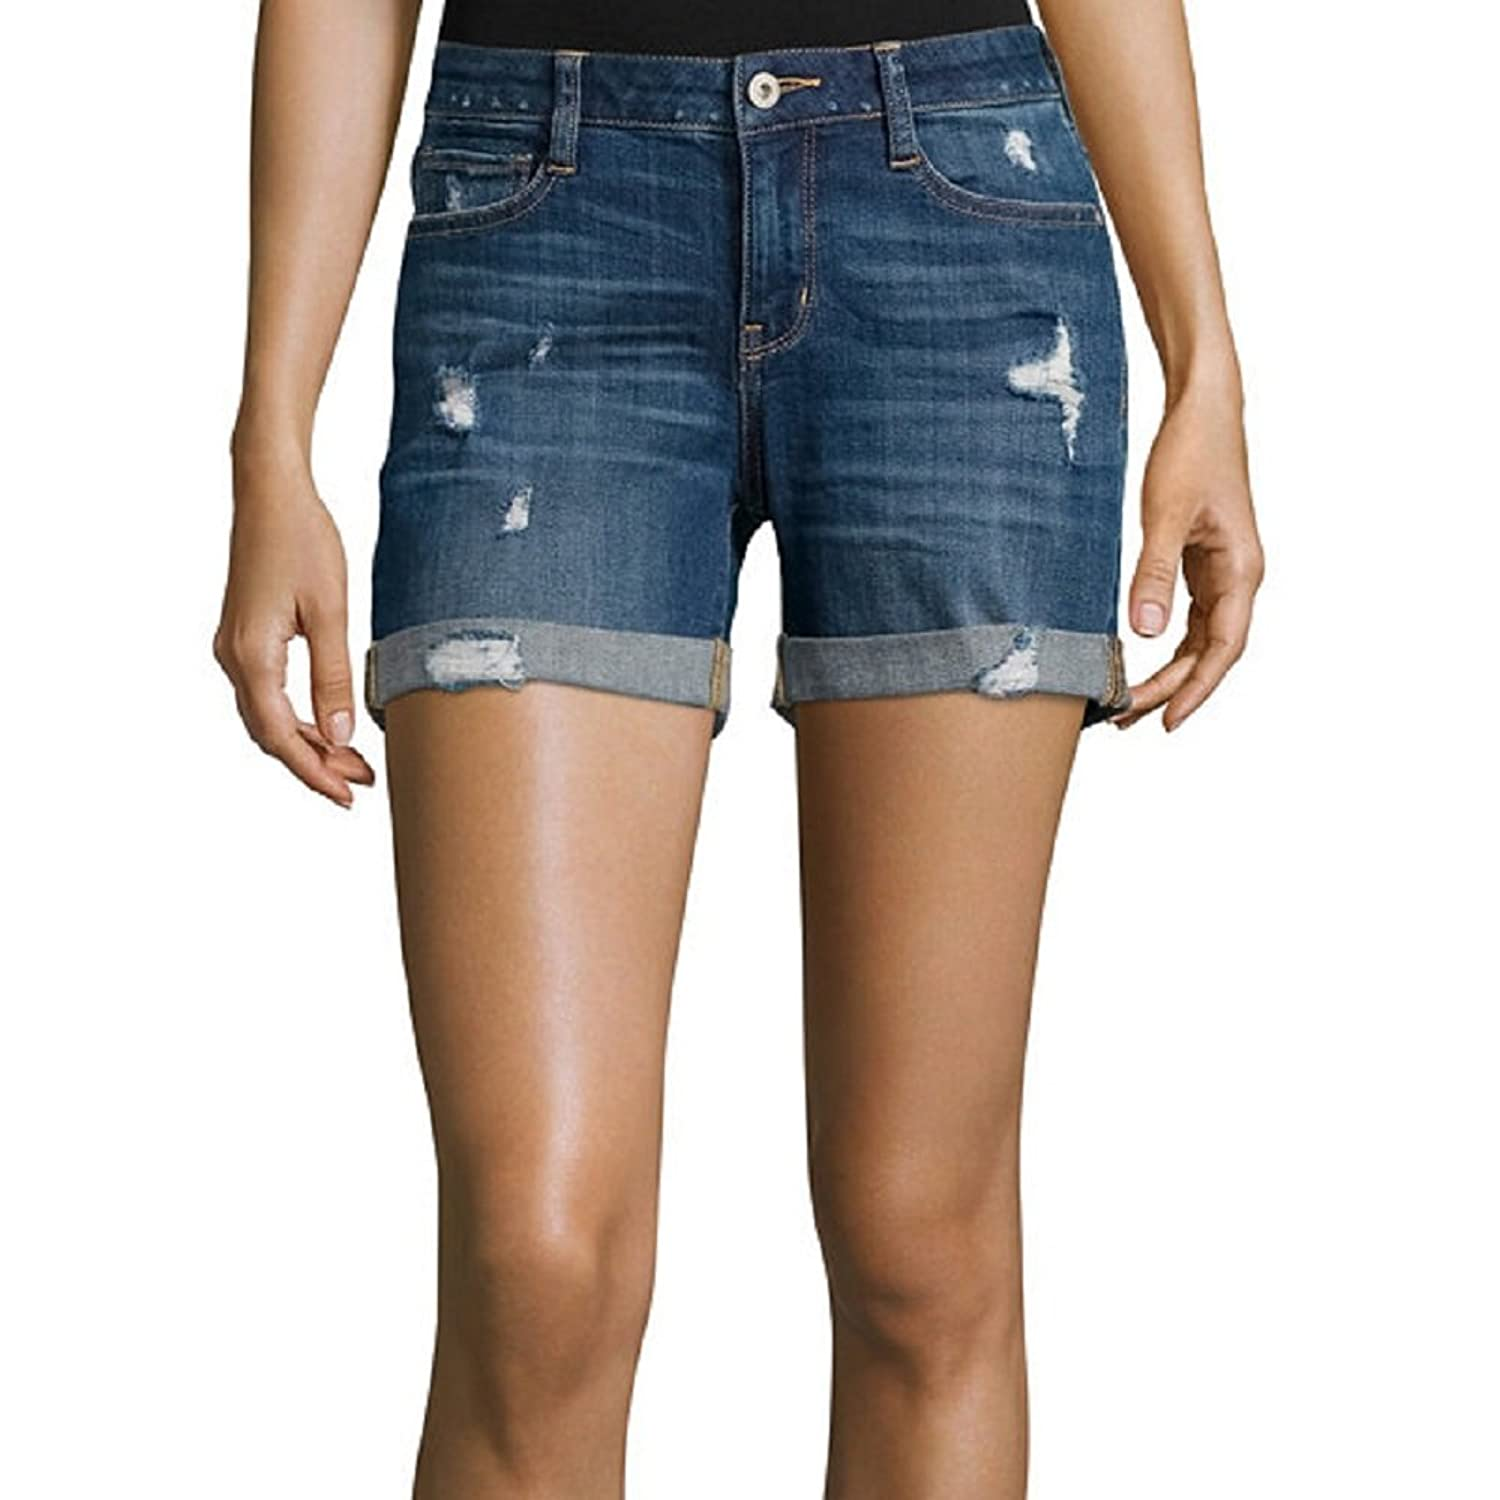 Arizona Destructed Boyfriend Shorts Juniors Size 9 New Riot